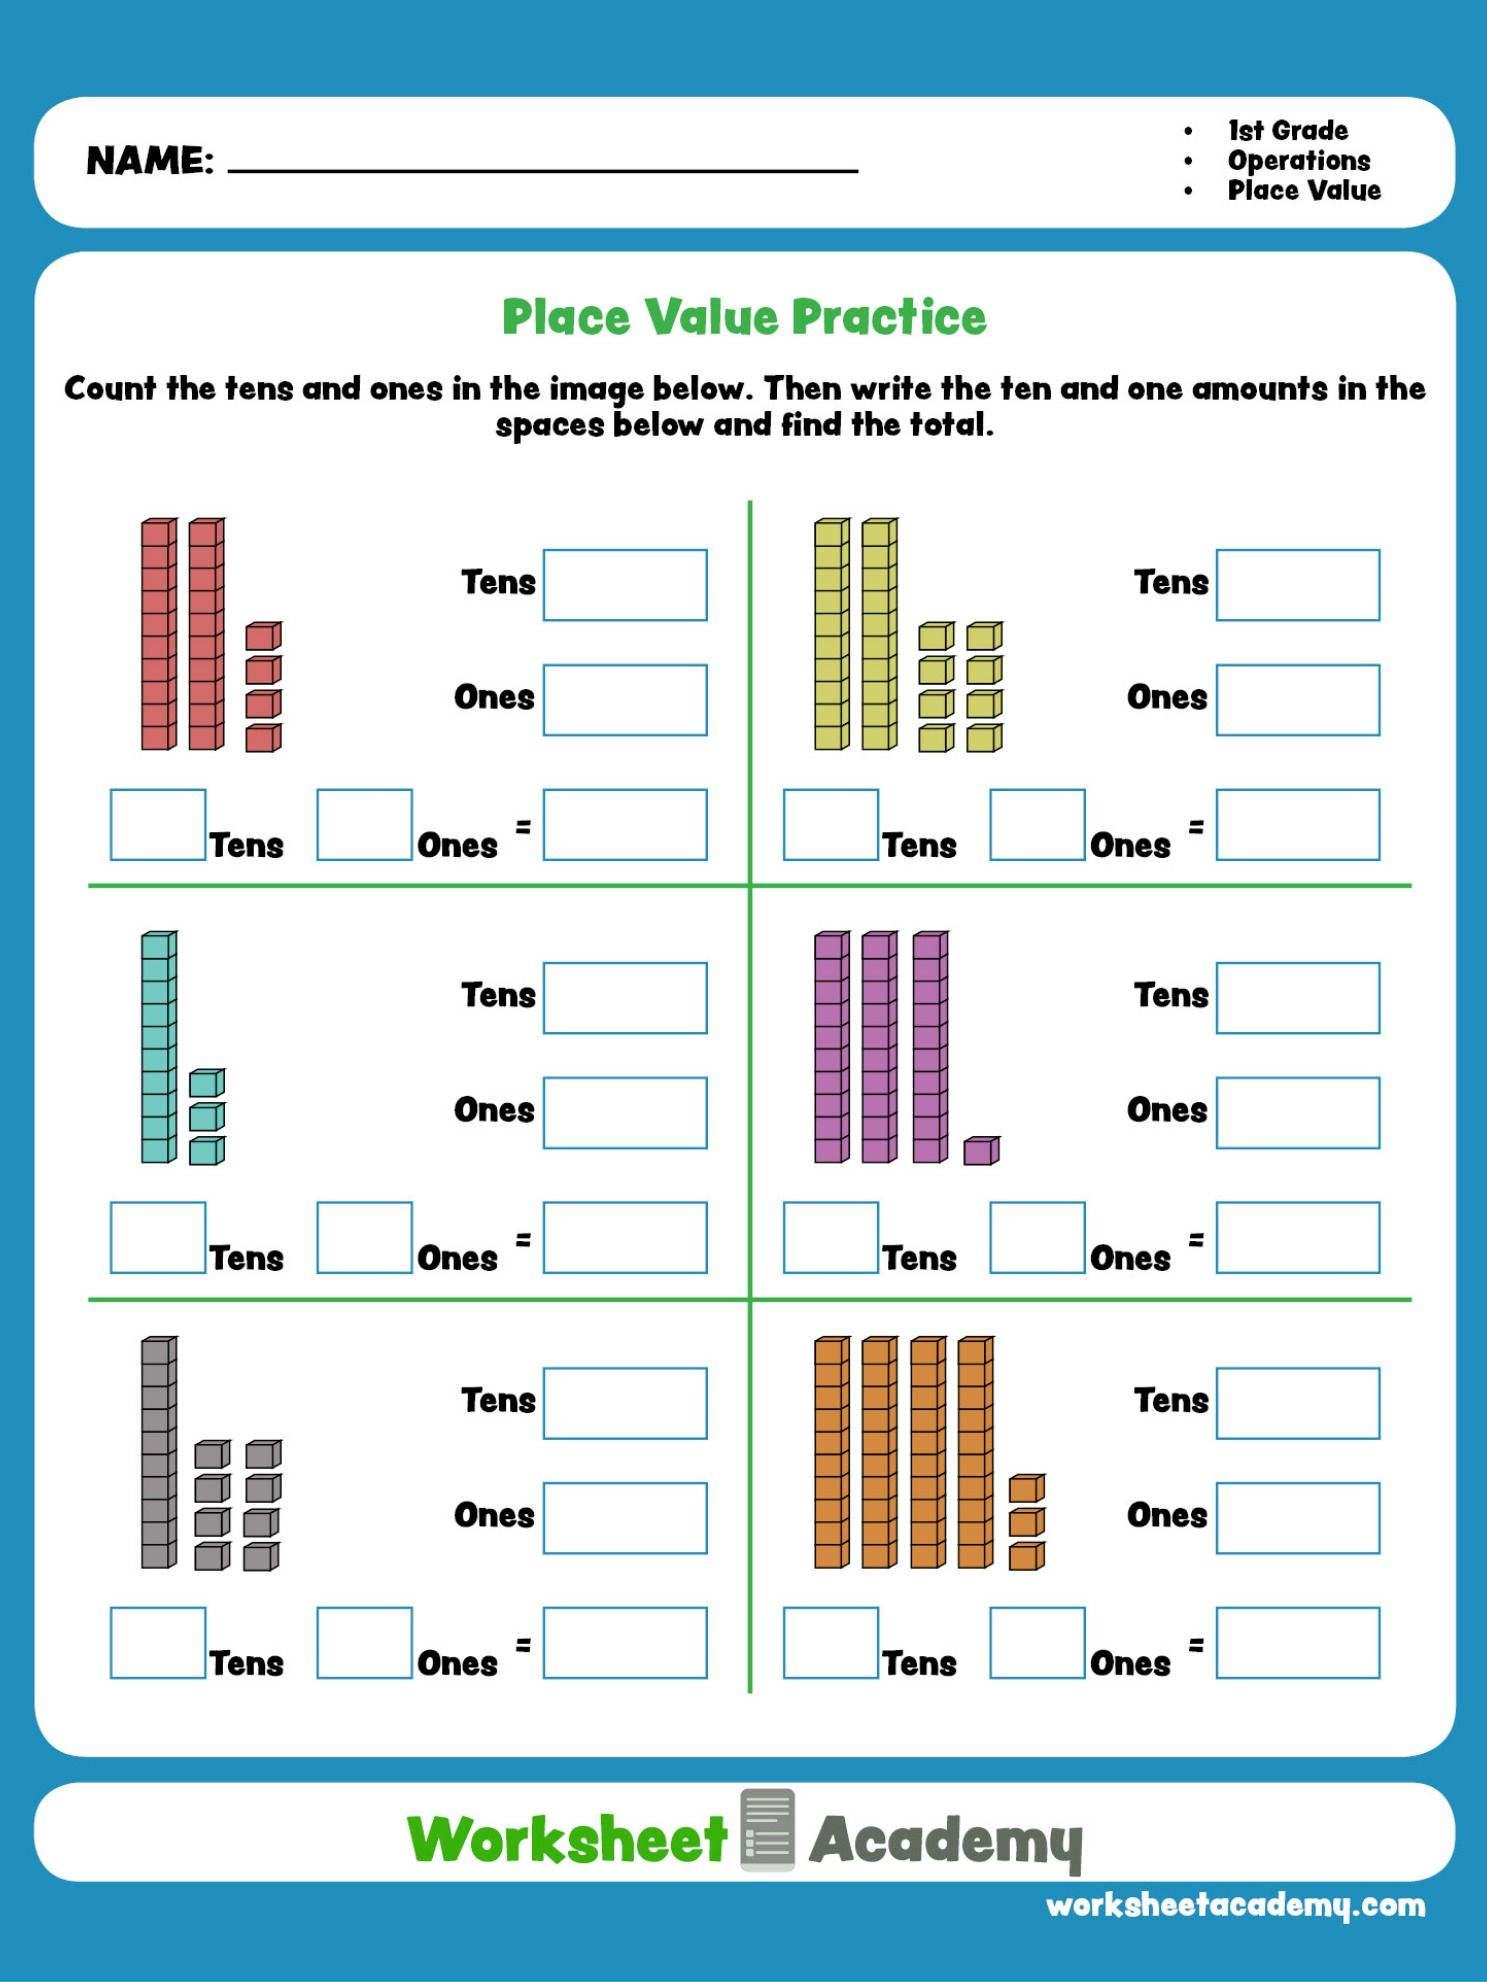 hight resolution of Place Value Practice   First grade math worksheets